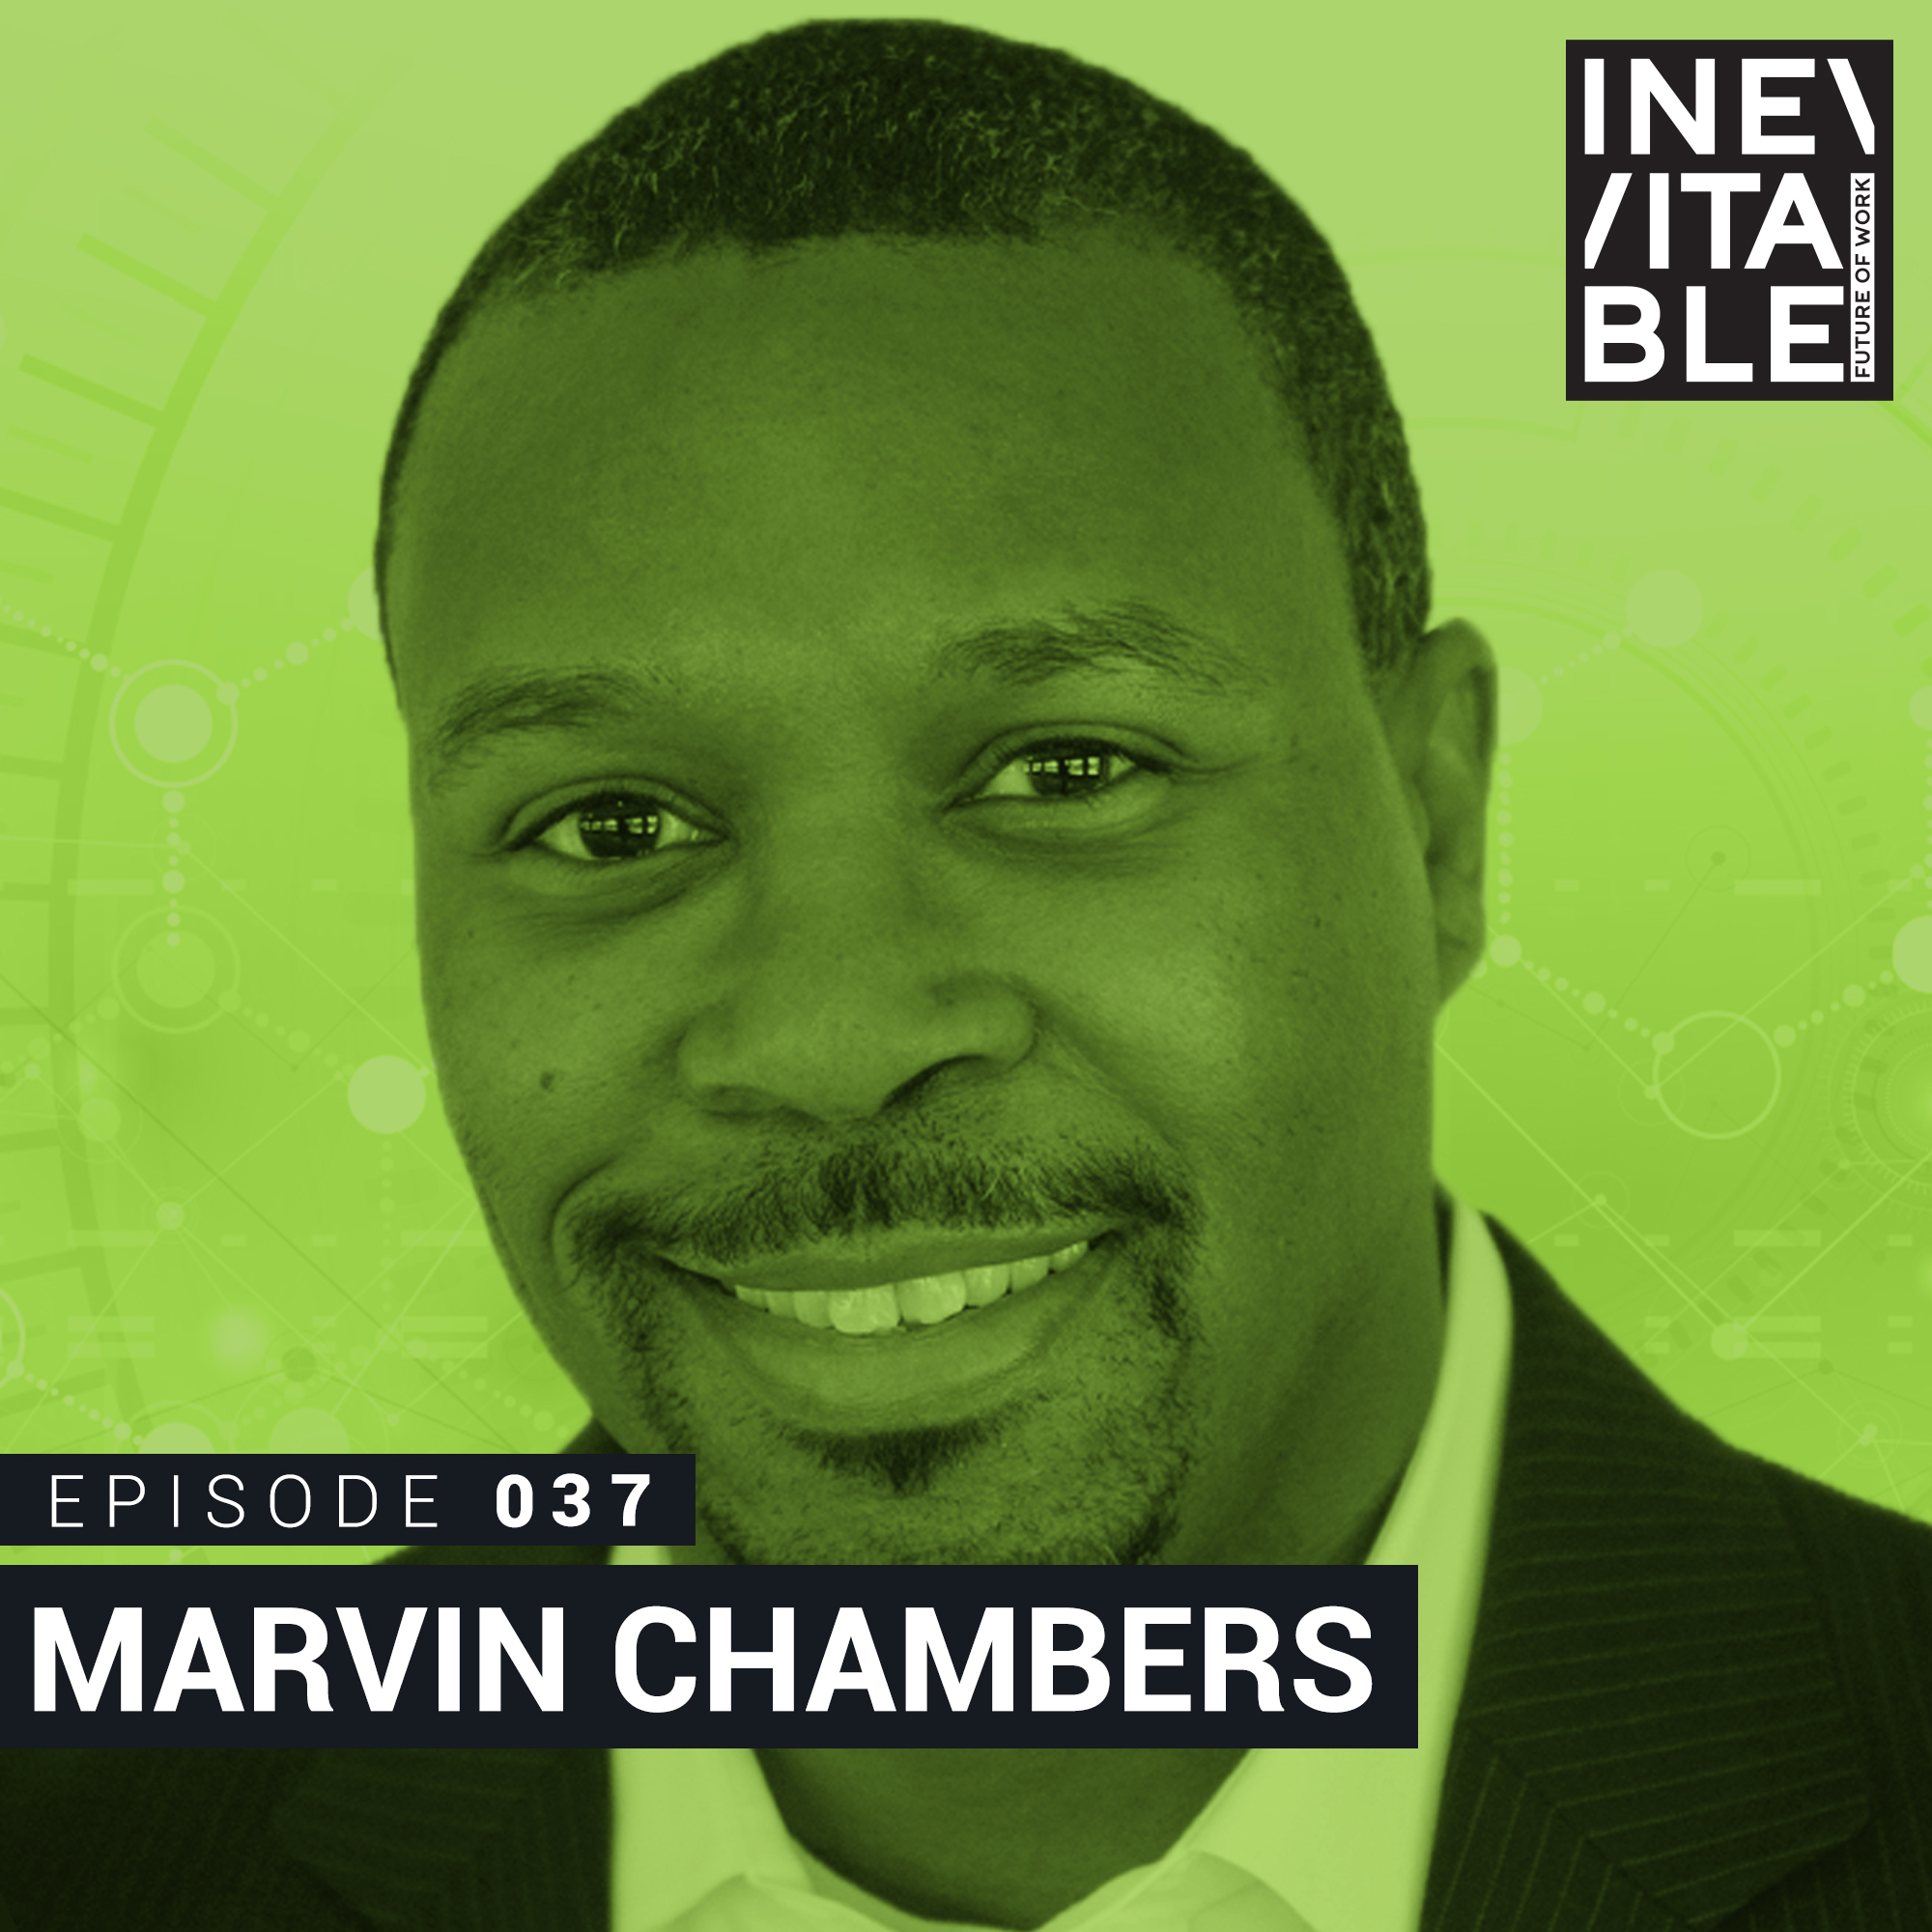 Marvin Chambers